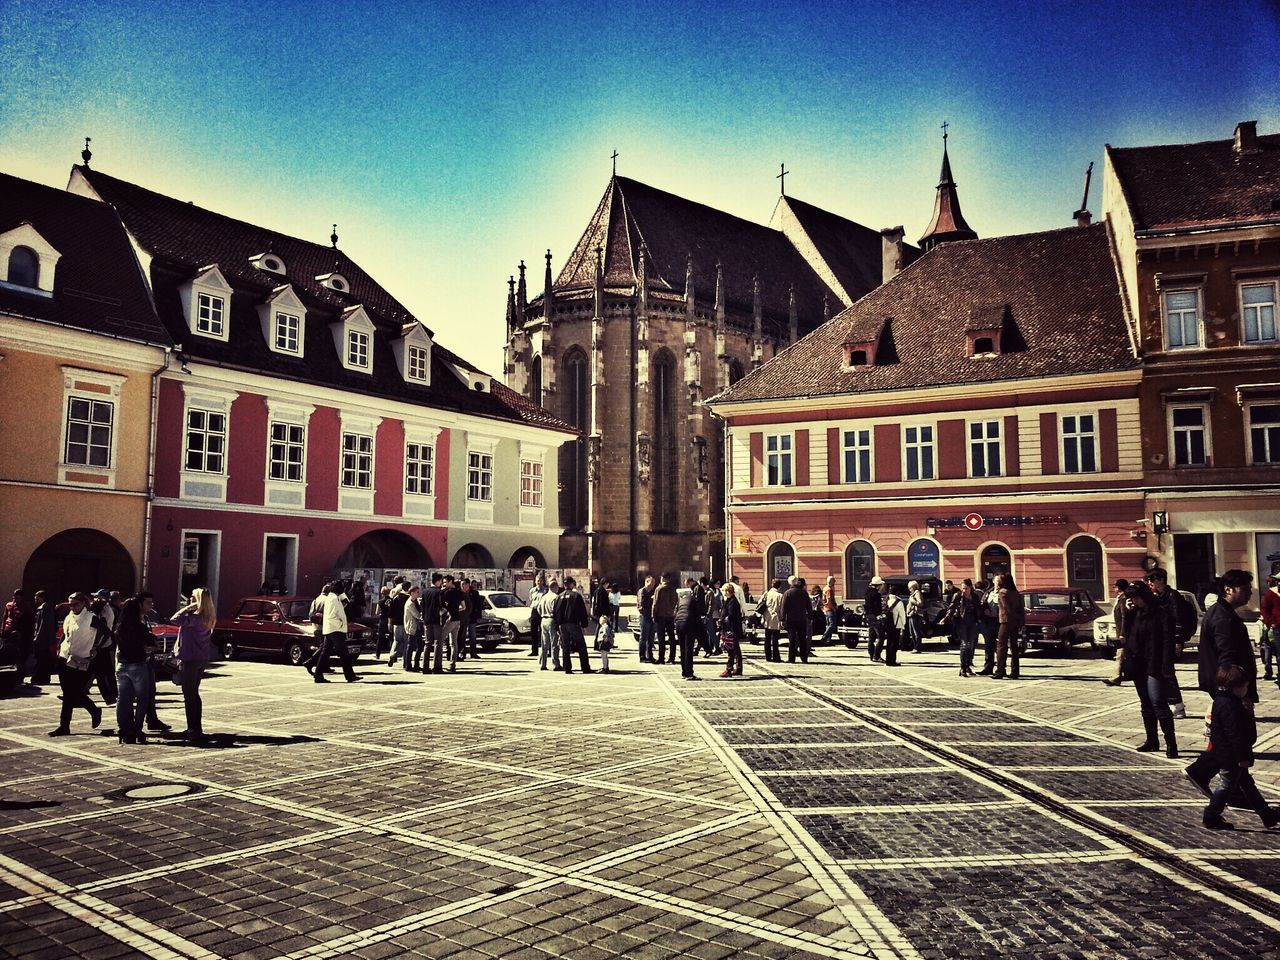 architecture, large group of people, building exterior, built structure, outdoors, day, real people, men, sky, city, people